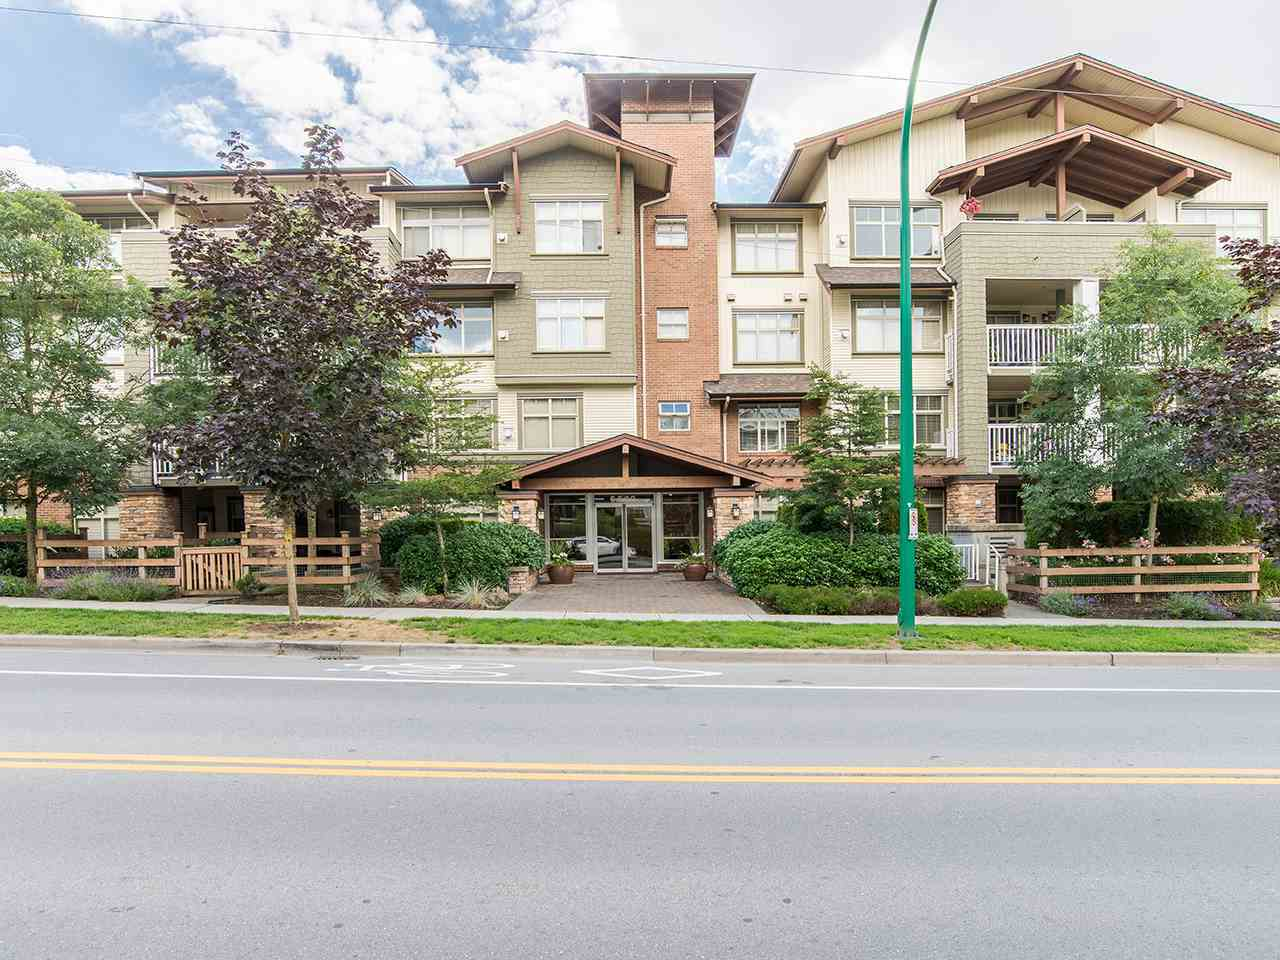 Main Photo: 316 6500 194 STREET in Surrey: Clayton Condo for sale (Cloverdale)  : MLS® # R2118450